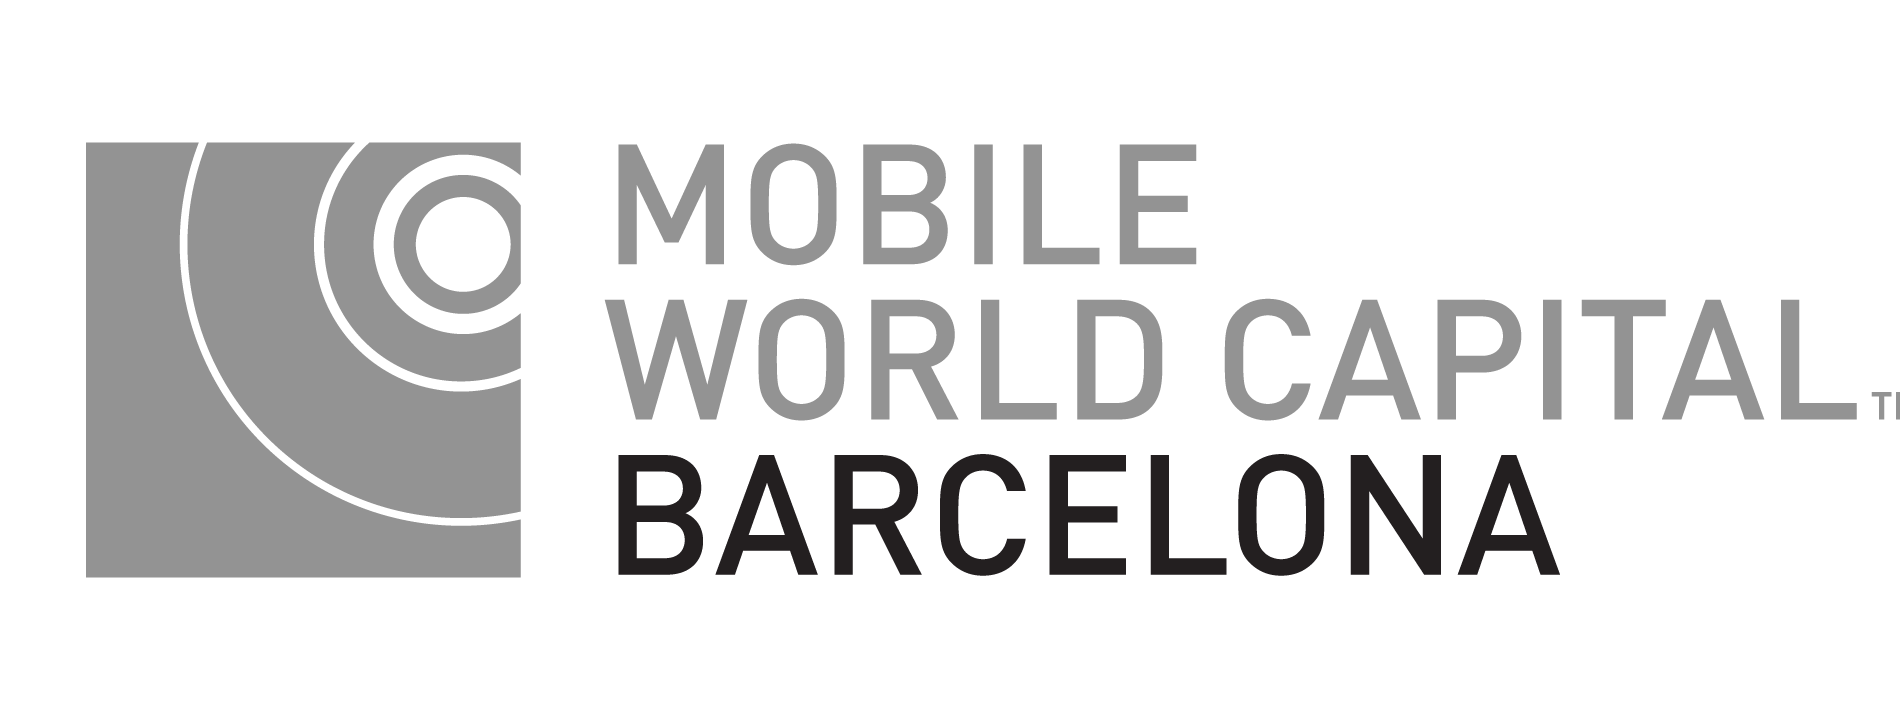 Mobile World Capital BCN@2x.png